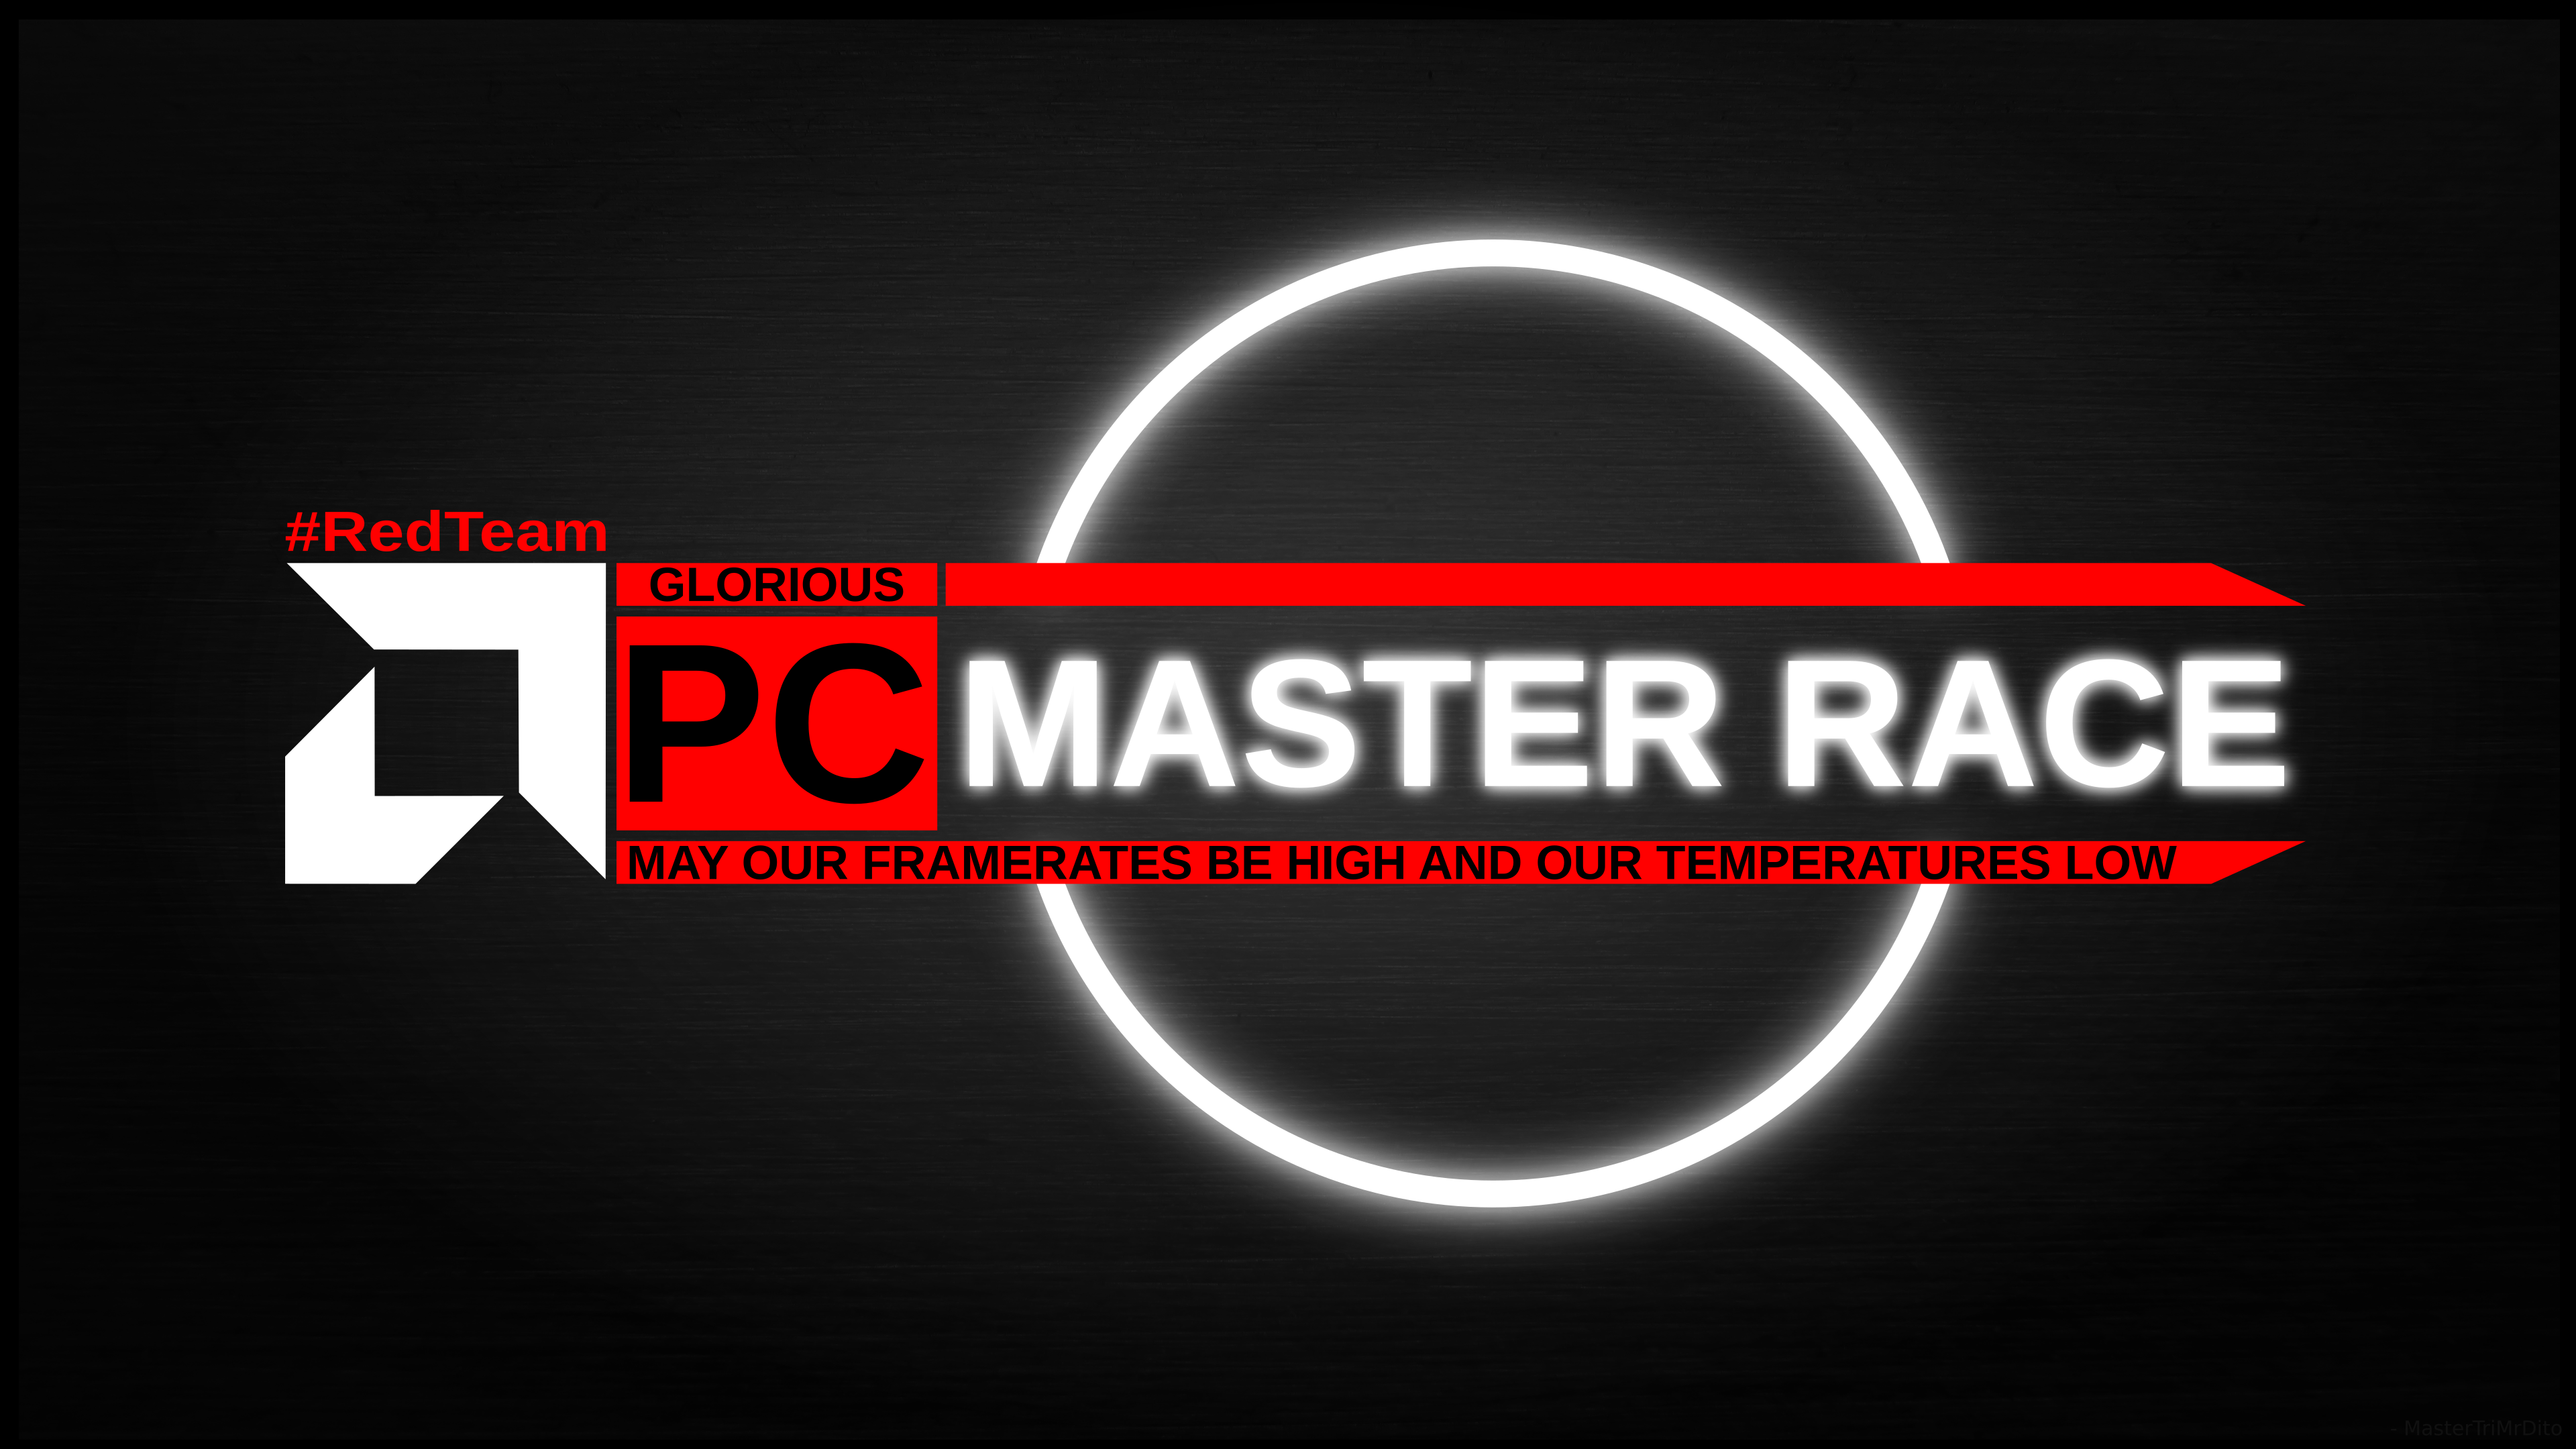 Pc Master Race Wallpapers Album On Imgur Racing Wallpaper Red Team